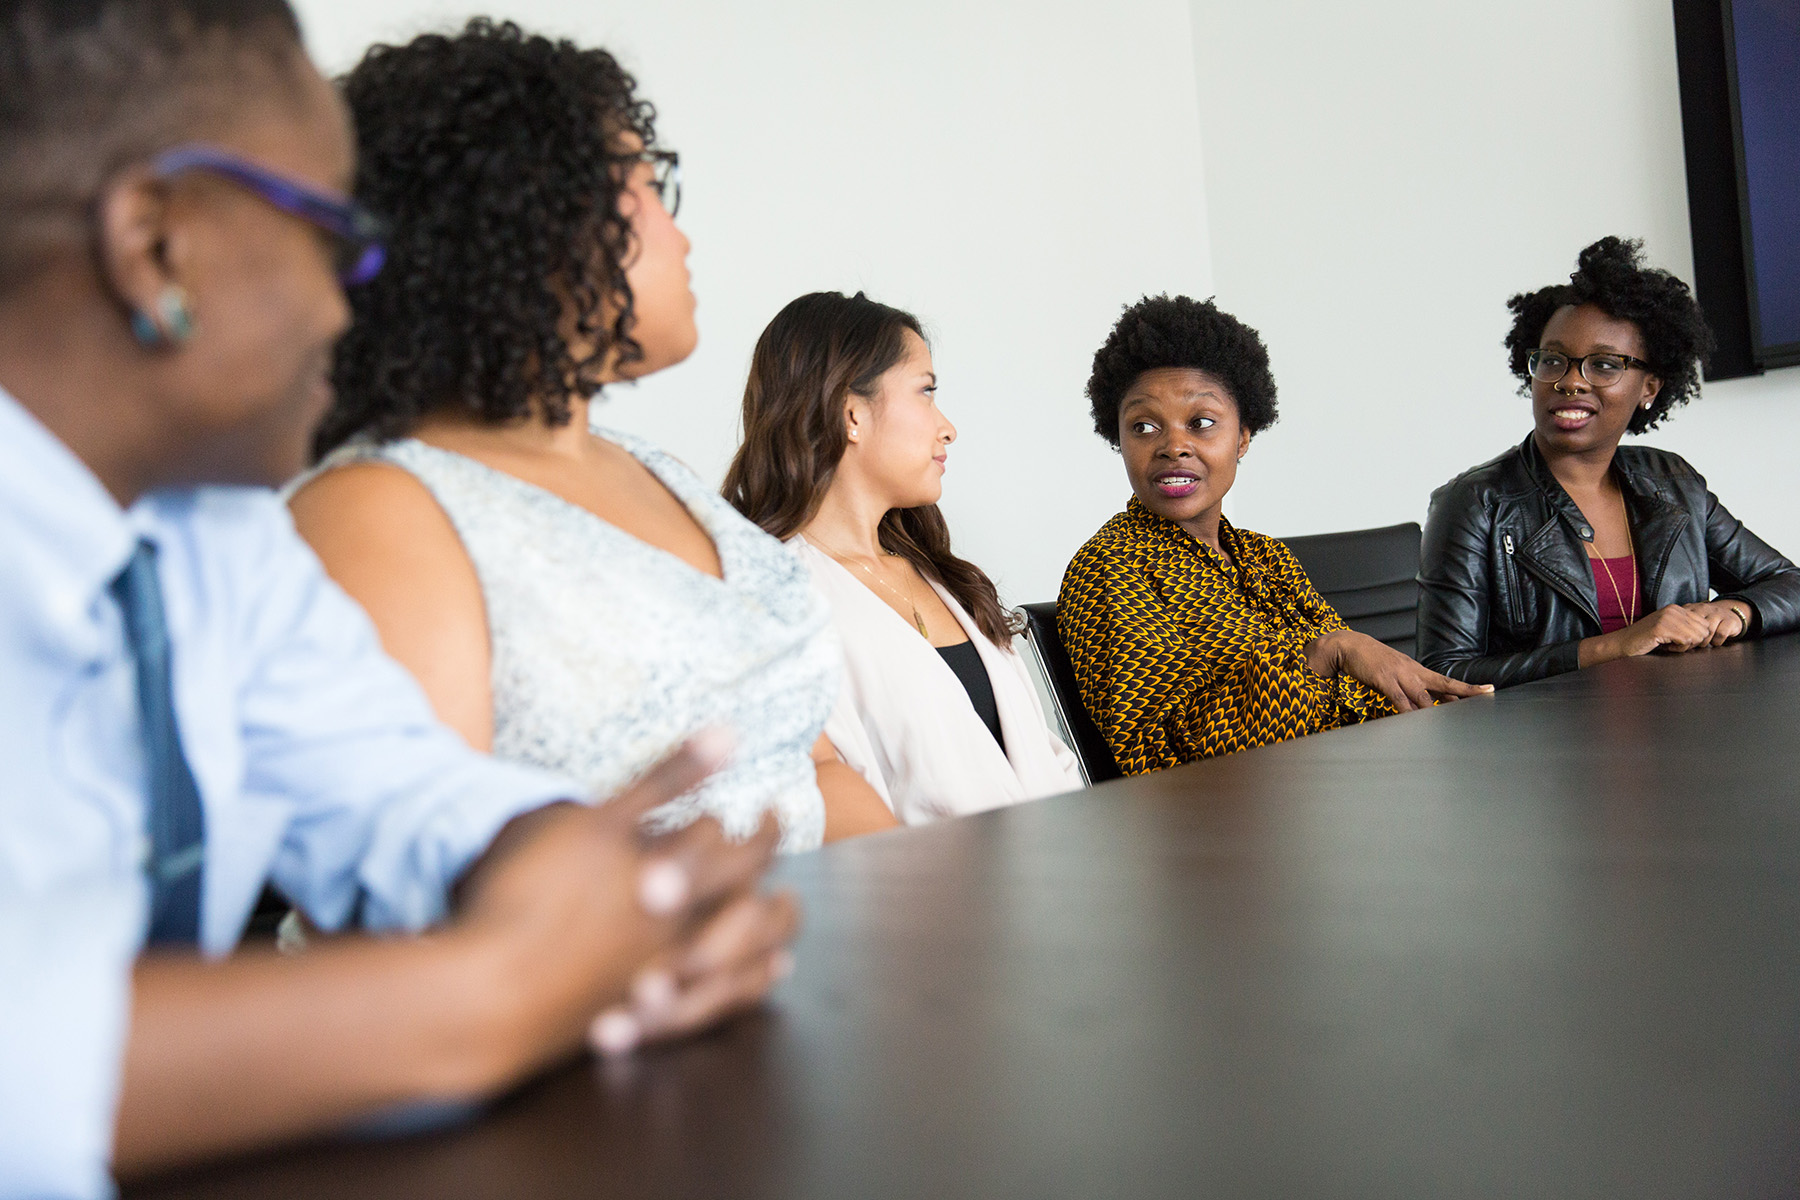 a diverse group of people at a conference room table